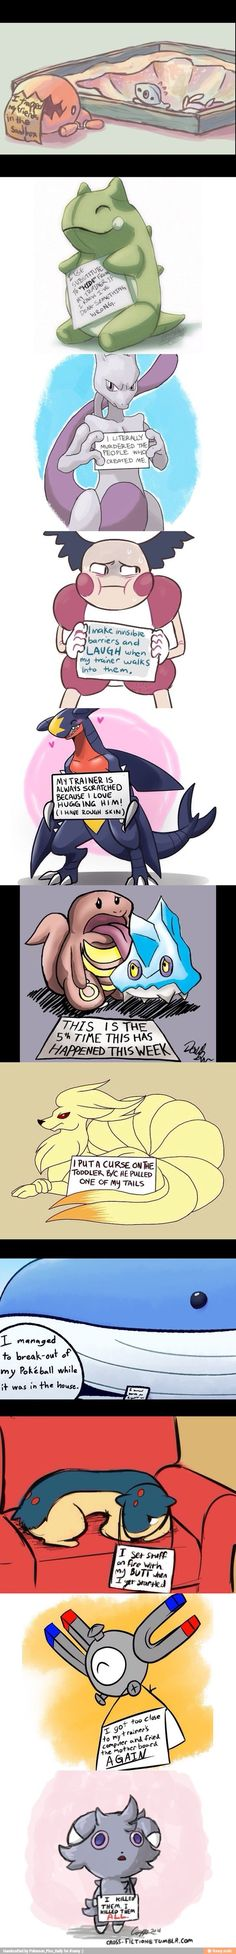 Pokemon shaming Good. #pokemonjokes